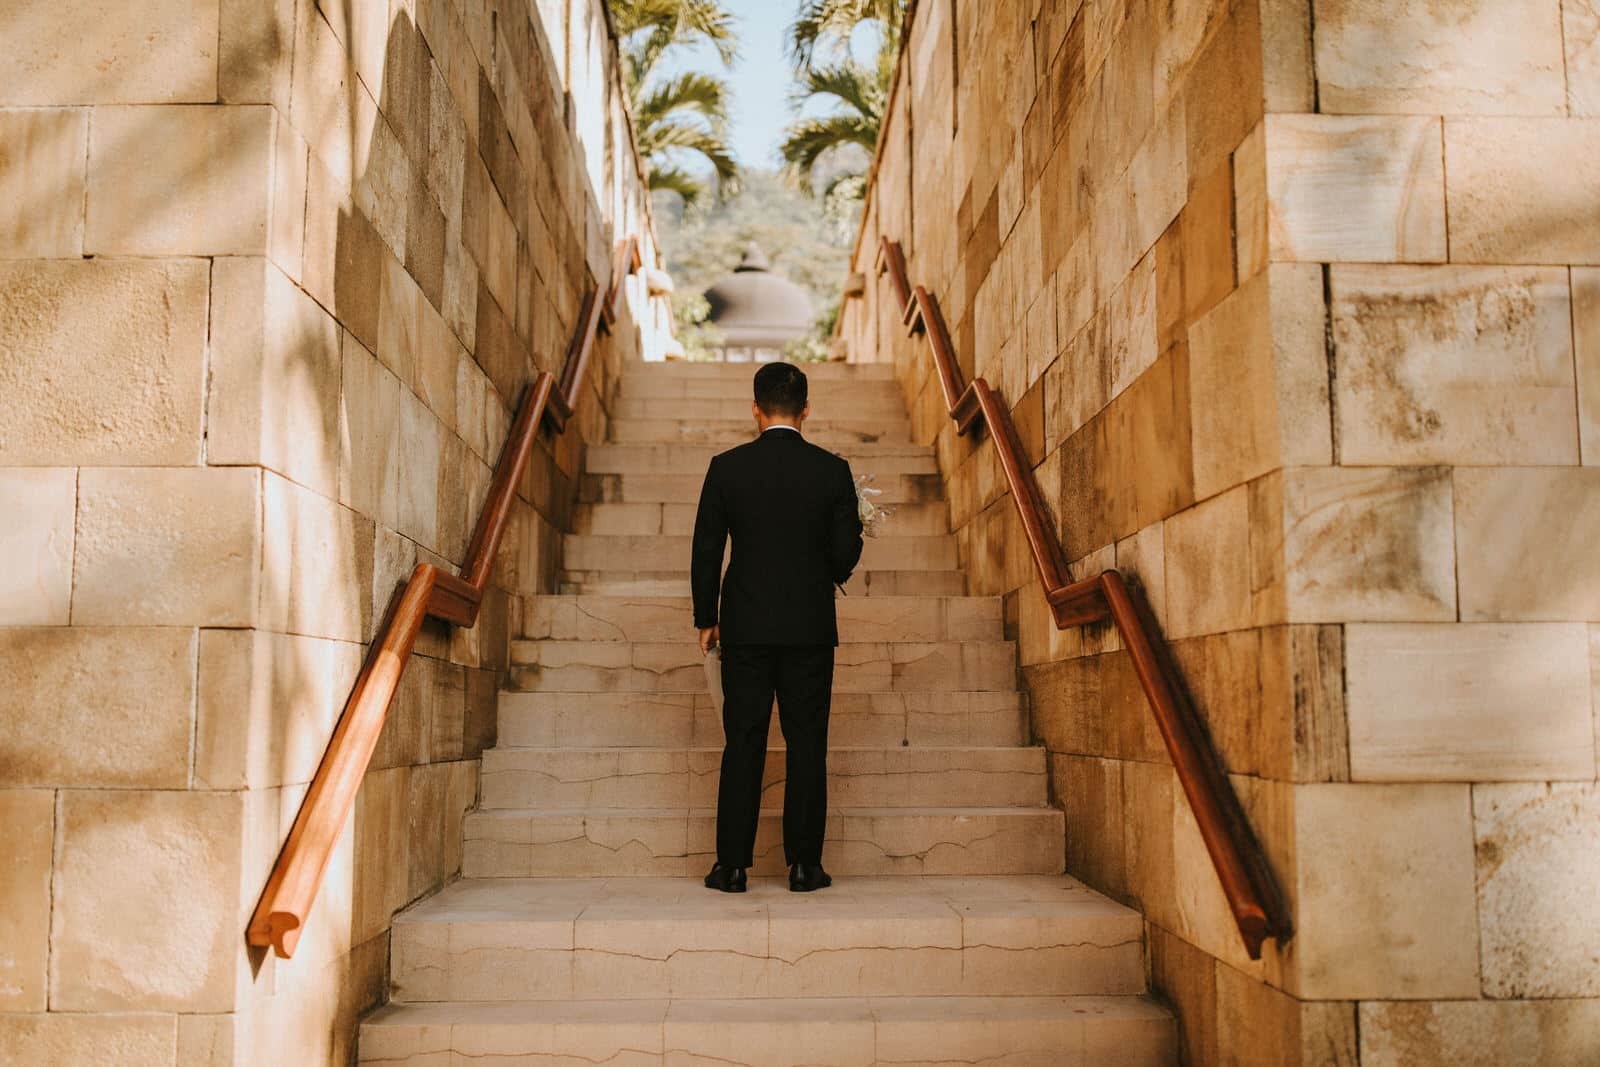 The groom is standing in the middle of stairs outside and facing away from the camera.